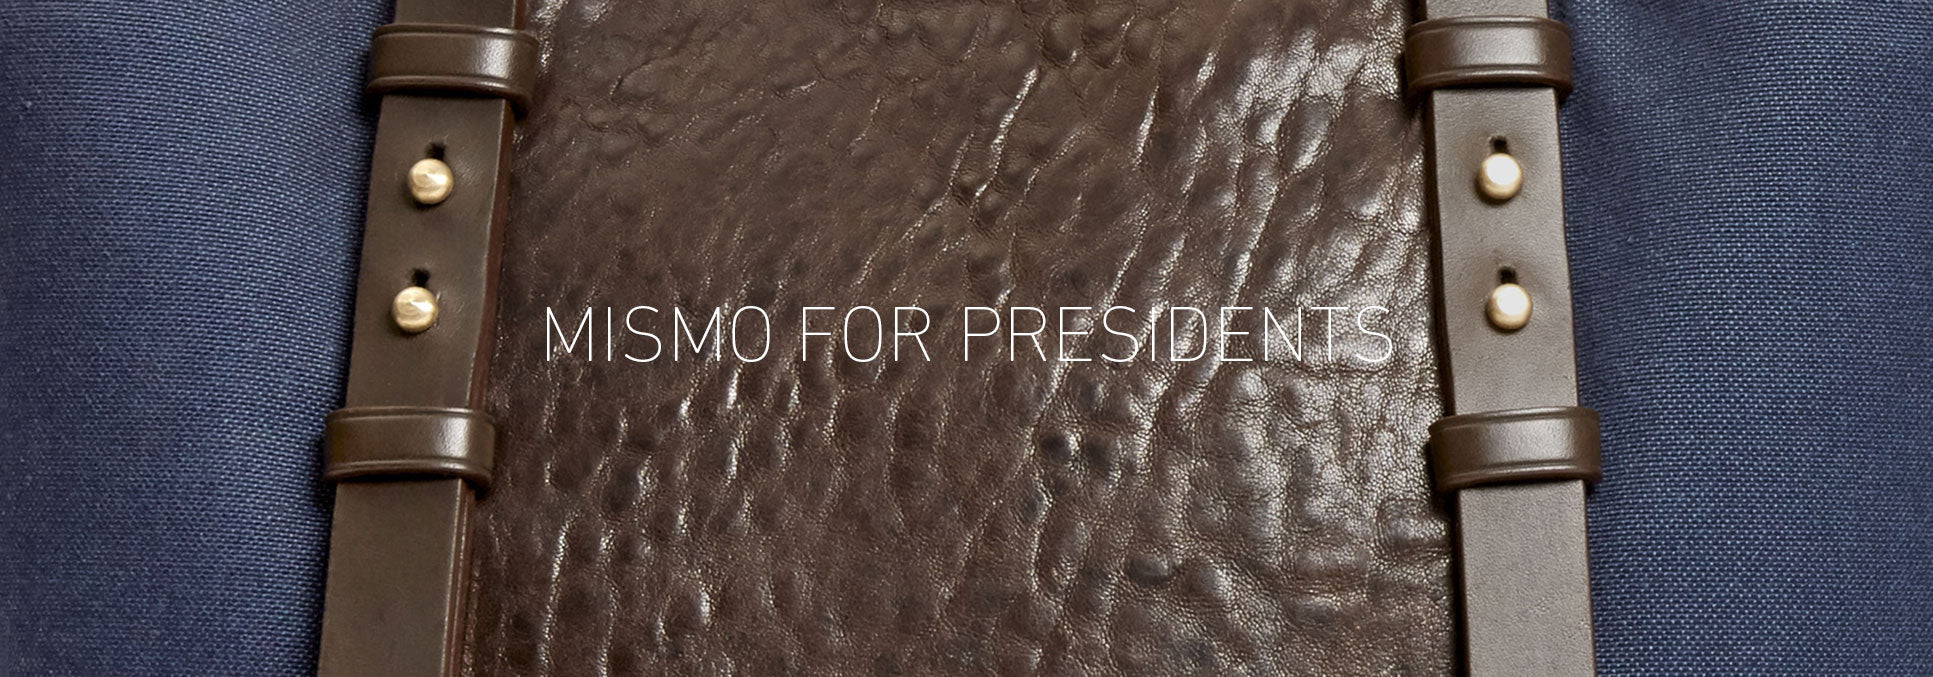 Mismo for Presidents